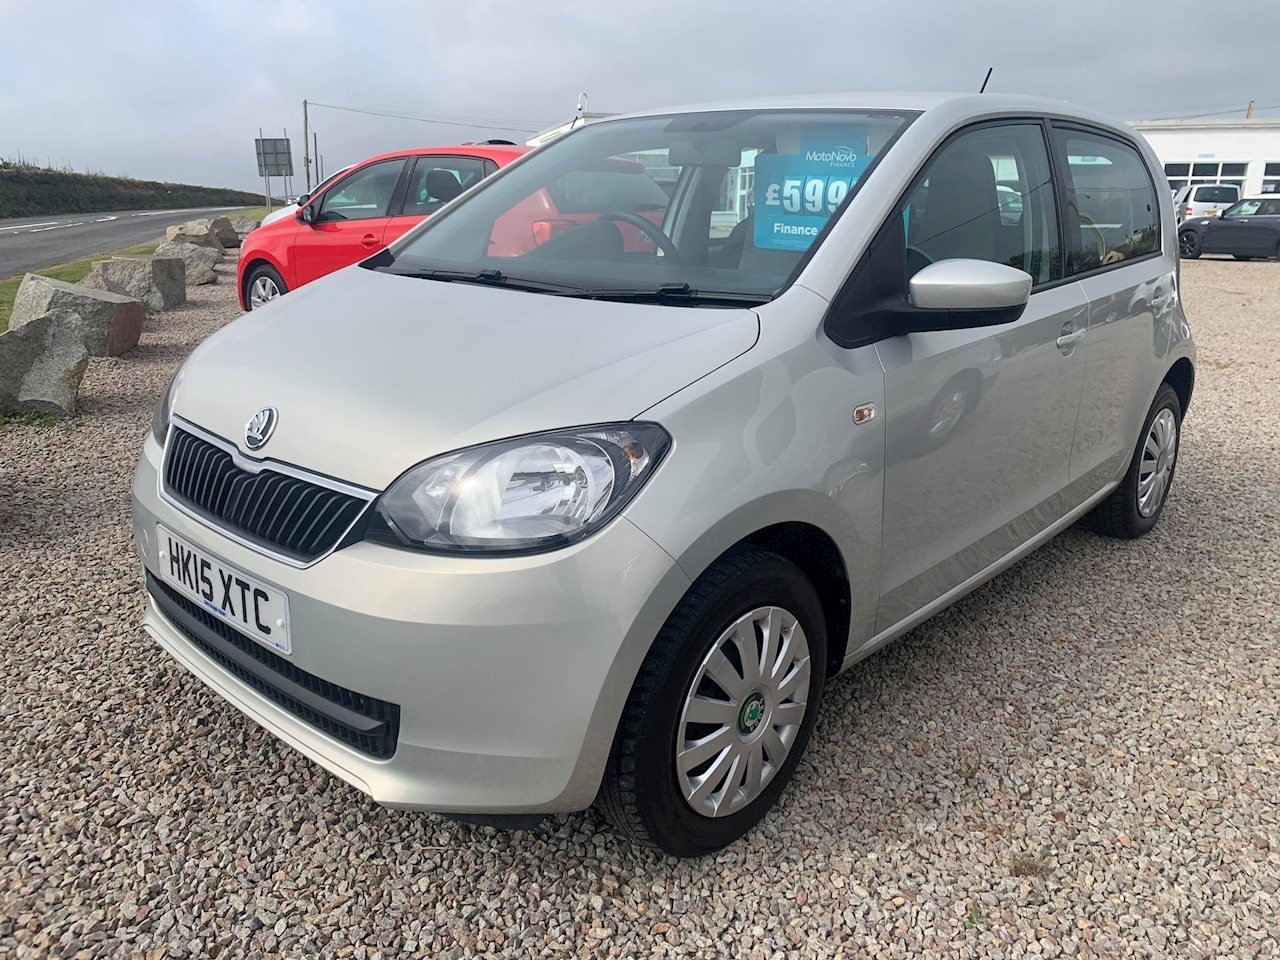 SKODA Citigo SE Hatchback 1.0 Manual Petrol